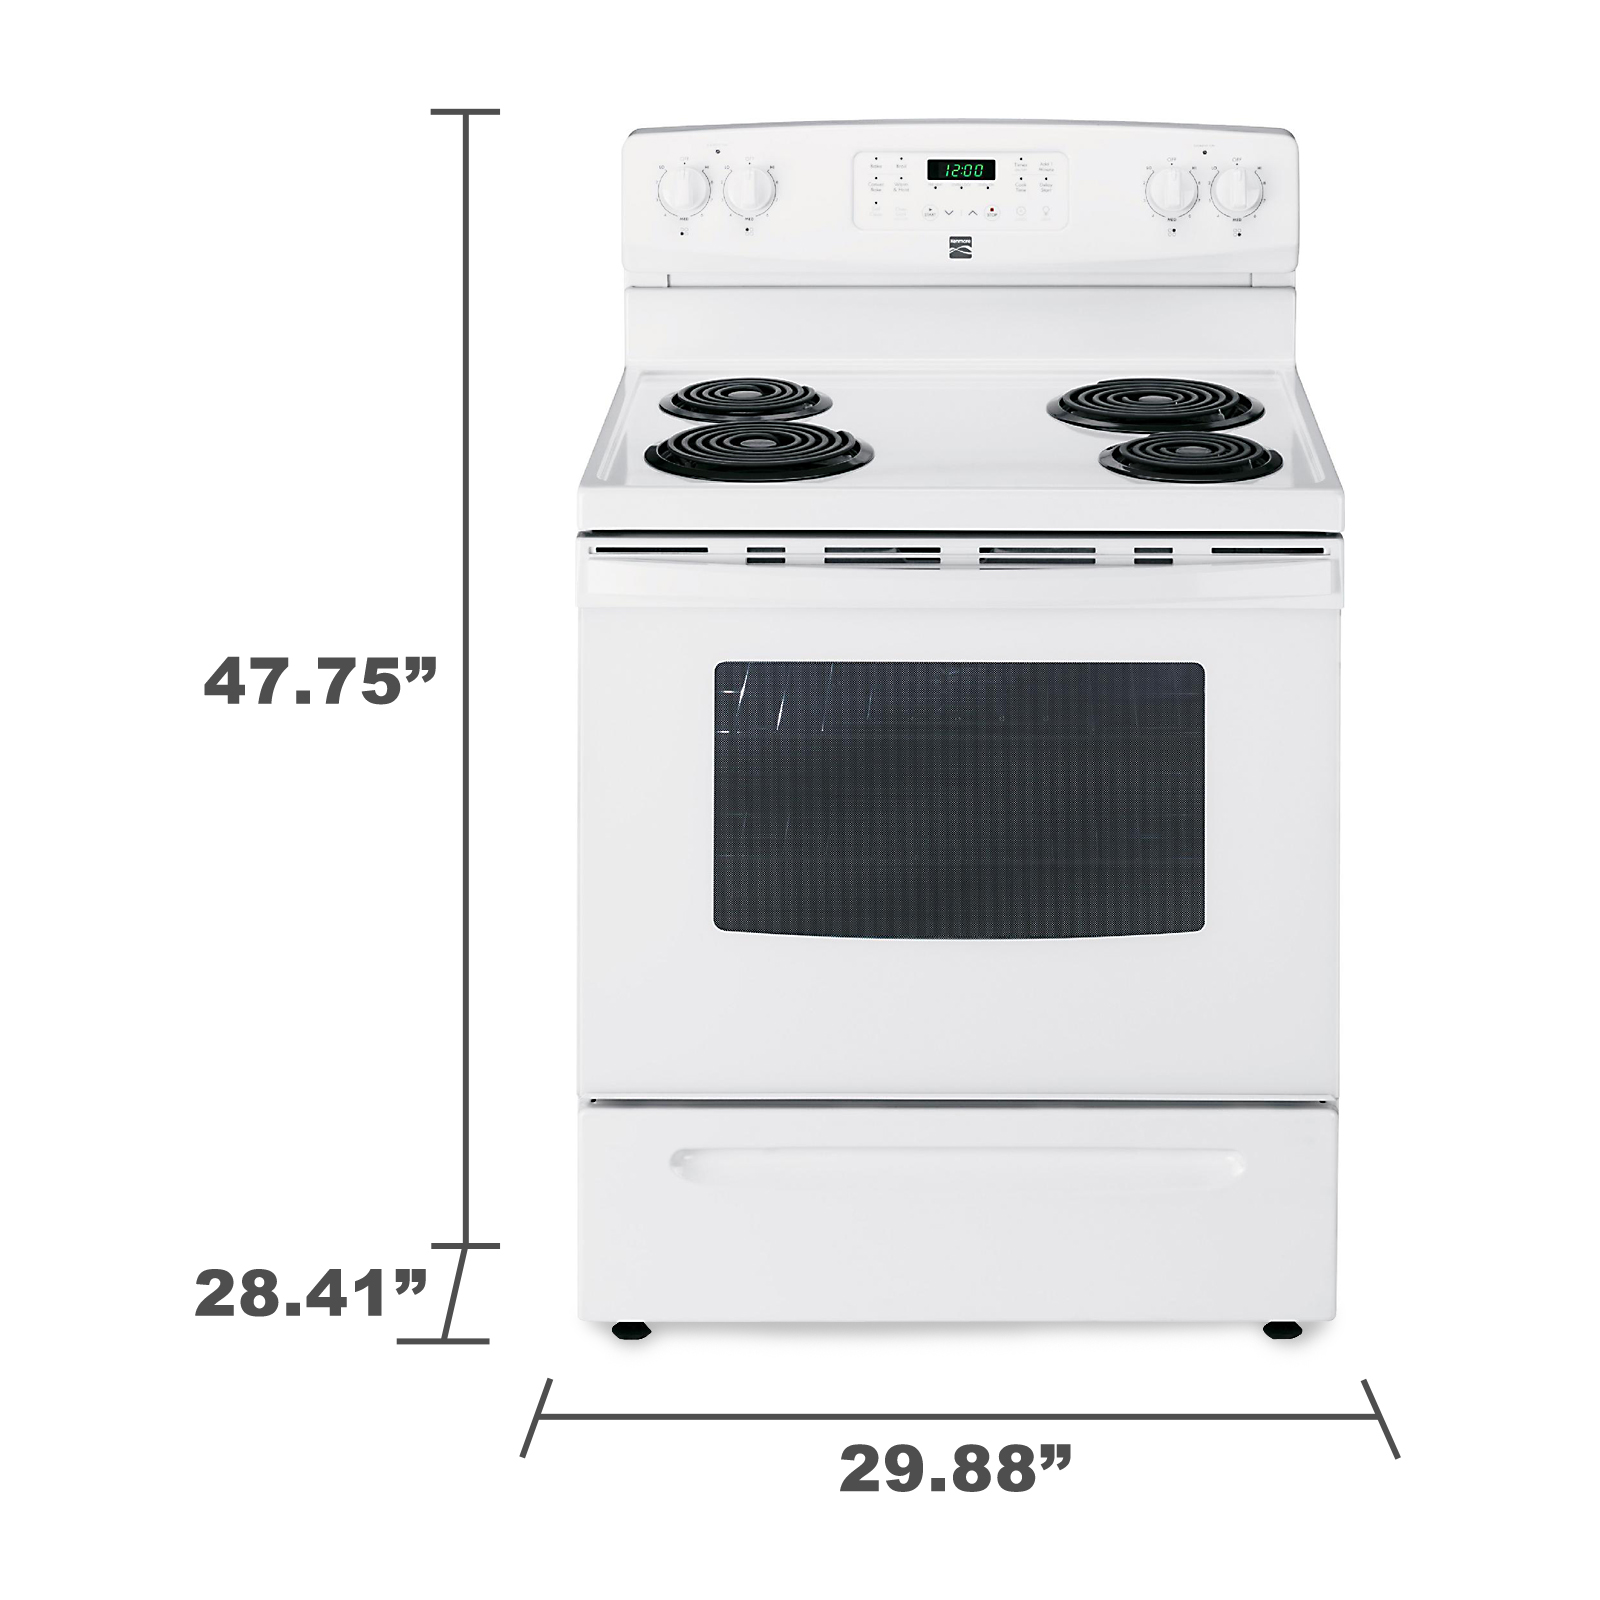 Kenmore 94152 5.4 cu. ft. Self-Cleaning Electric Range w / Convection Oven  - White